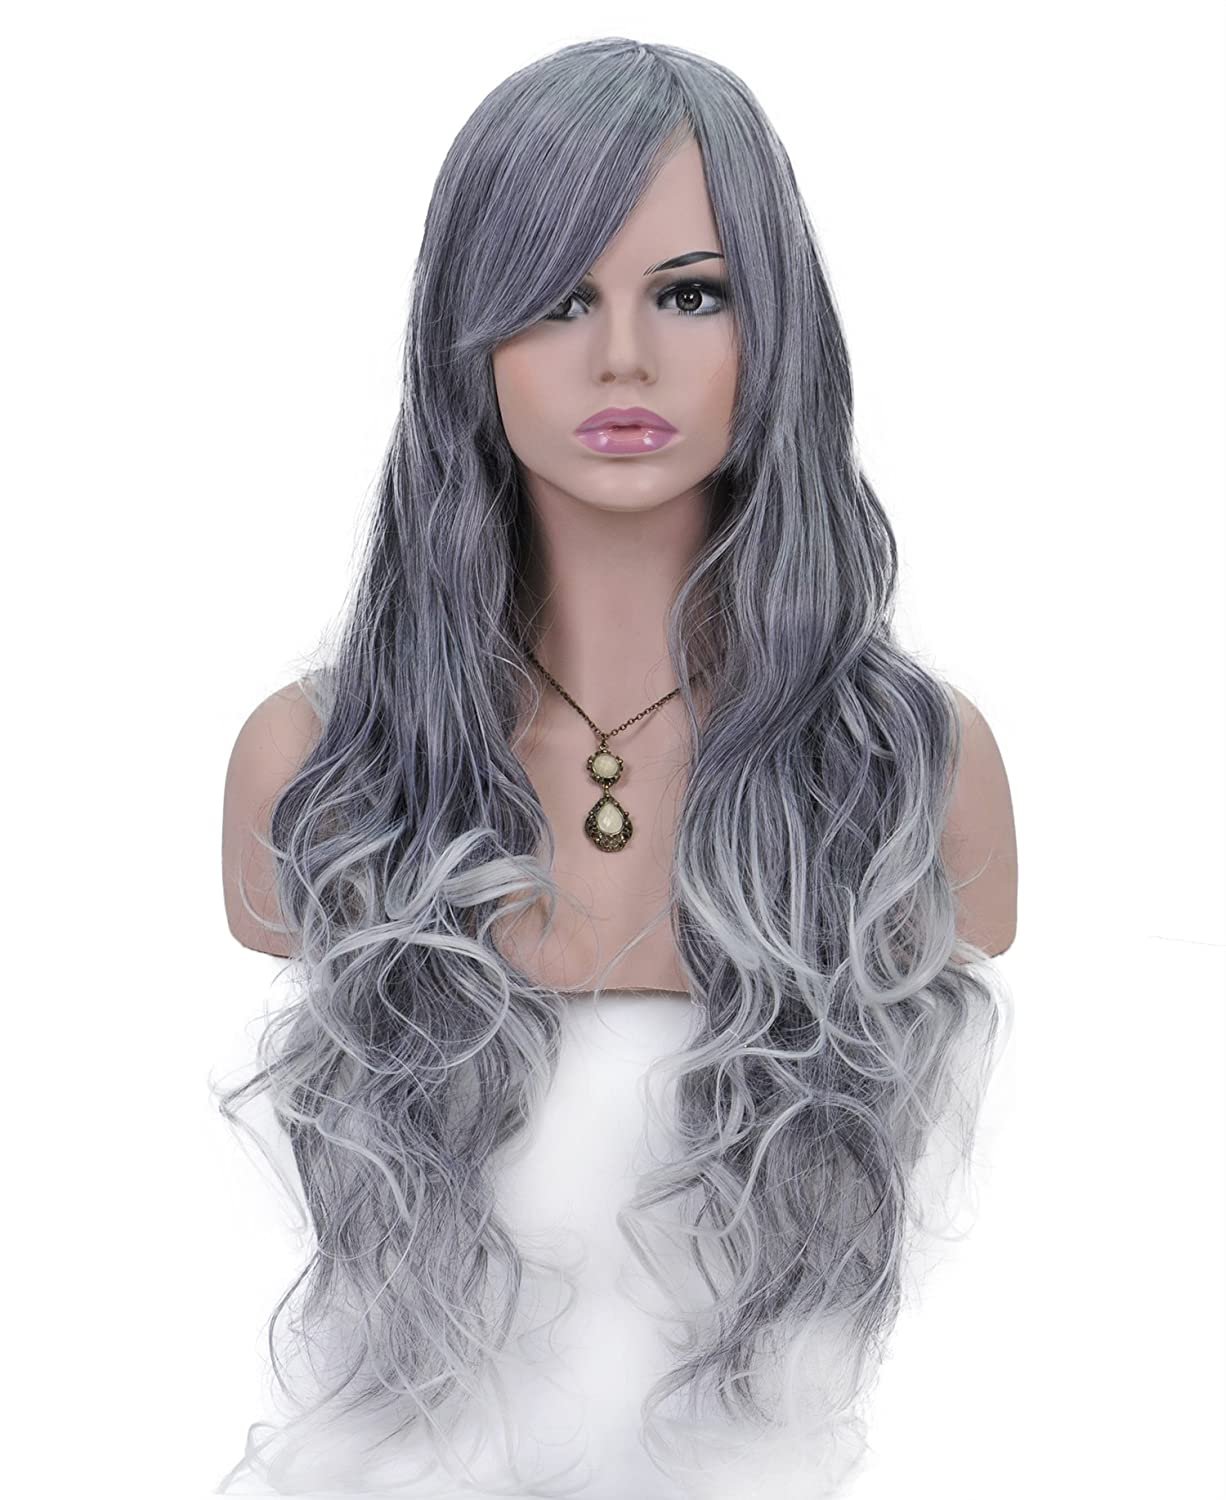 Spretty Hermoso largo rizado Harajuku estilo pelucas con oblicua Bangs para Cosplay Party (gris plata): Amazon.es: Belleza